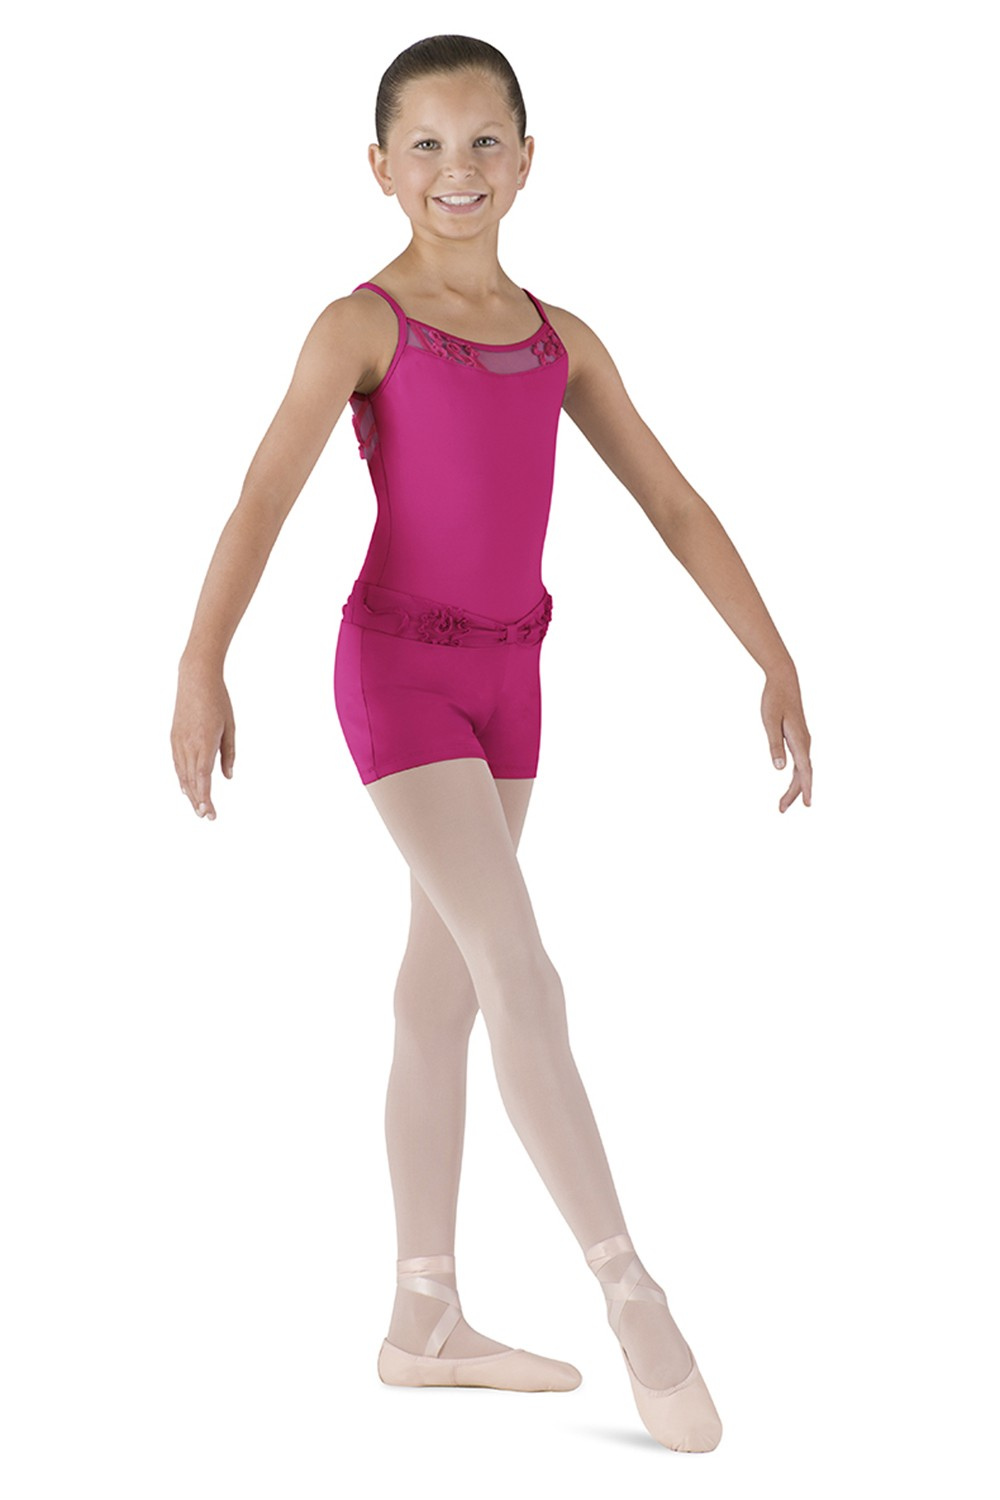 Our site is a great starting point if you are in the market to purchase new dancewear for your next recital or performance. Every week we showcase new children's dancewear which make shopping for kids dancewear online a breeze.